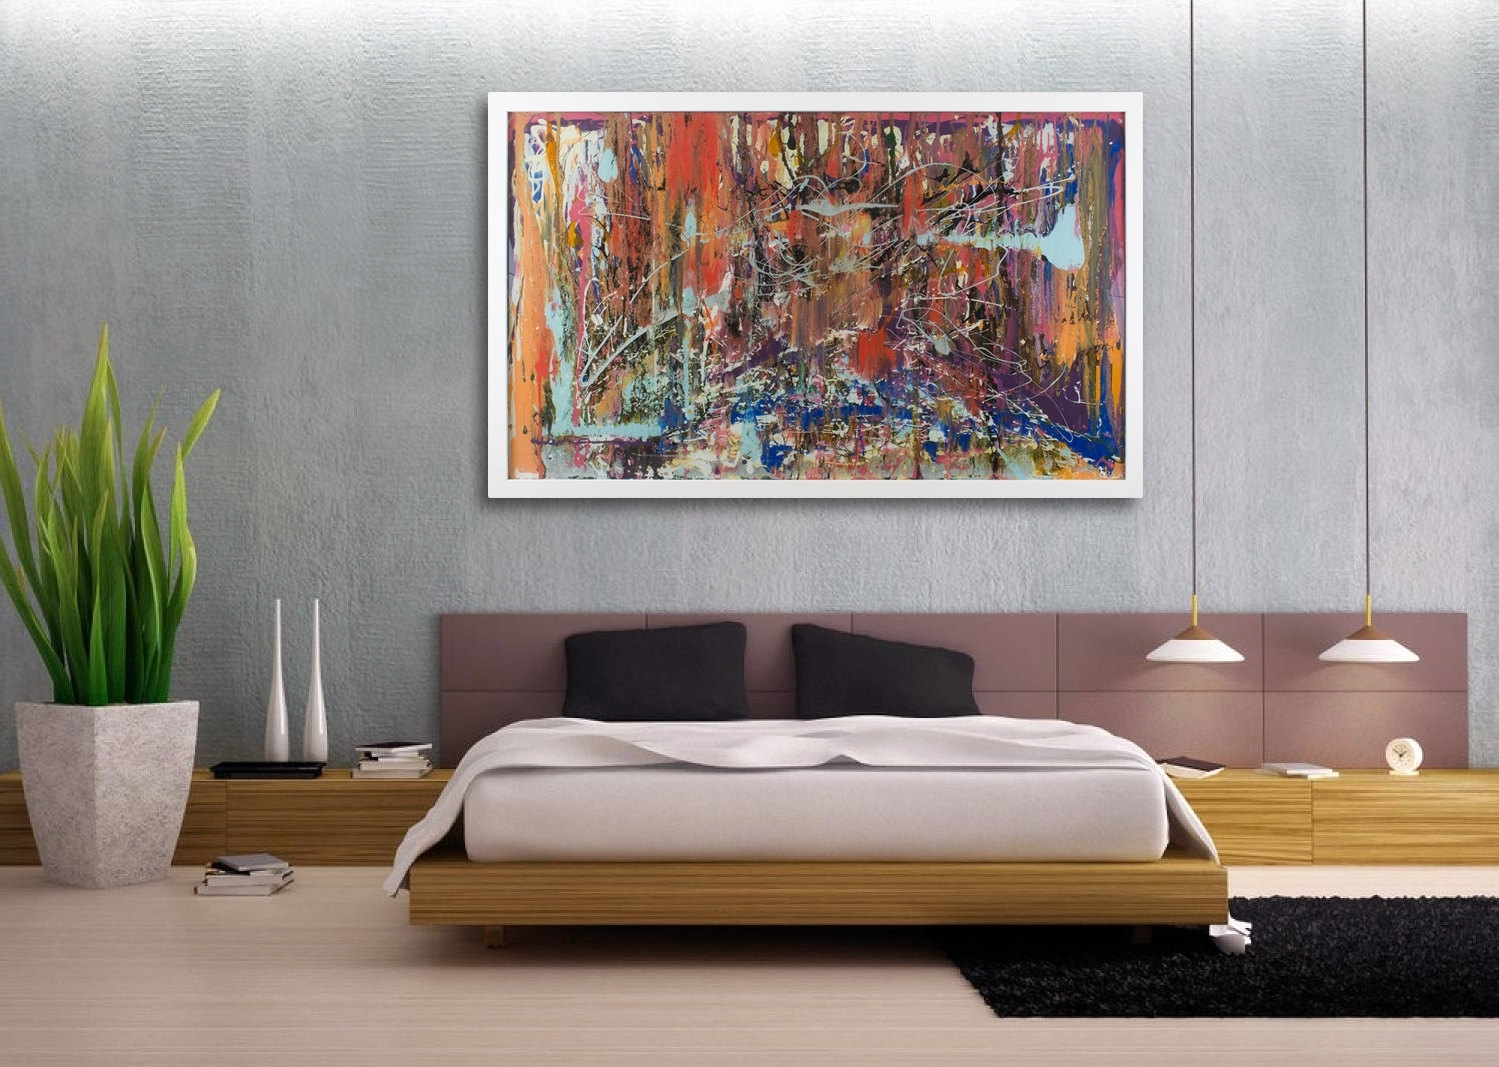 Innovative Way Modern Wall Decor Room — Joanne Russo Homesjoanne Within Newest Large Framed Abstract Wall Art (Gallery 5 of 20)